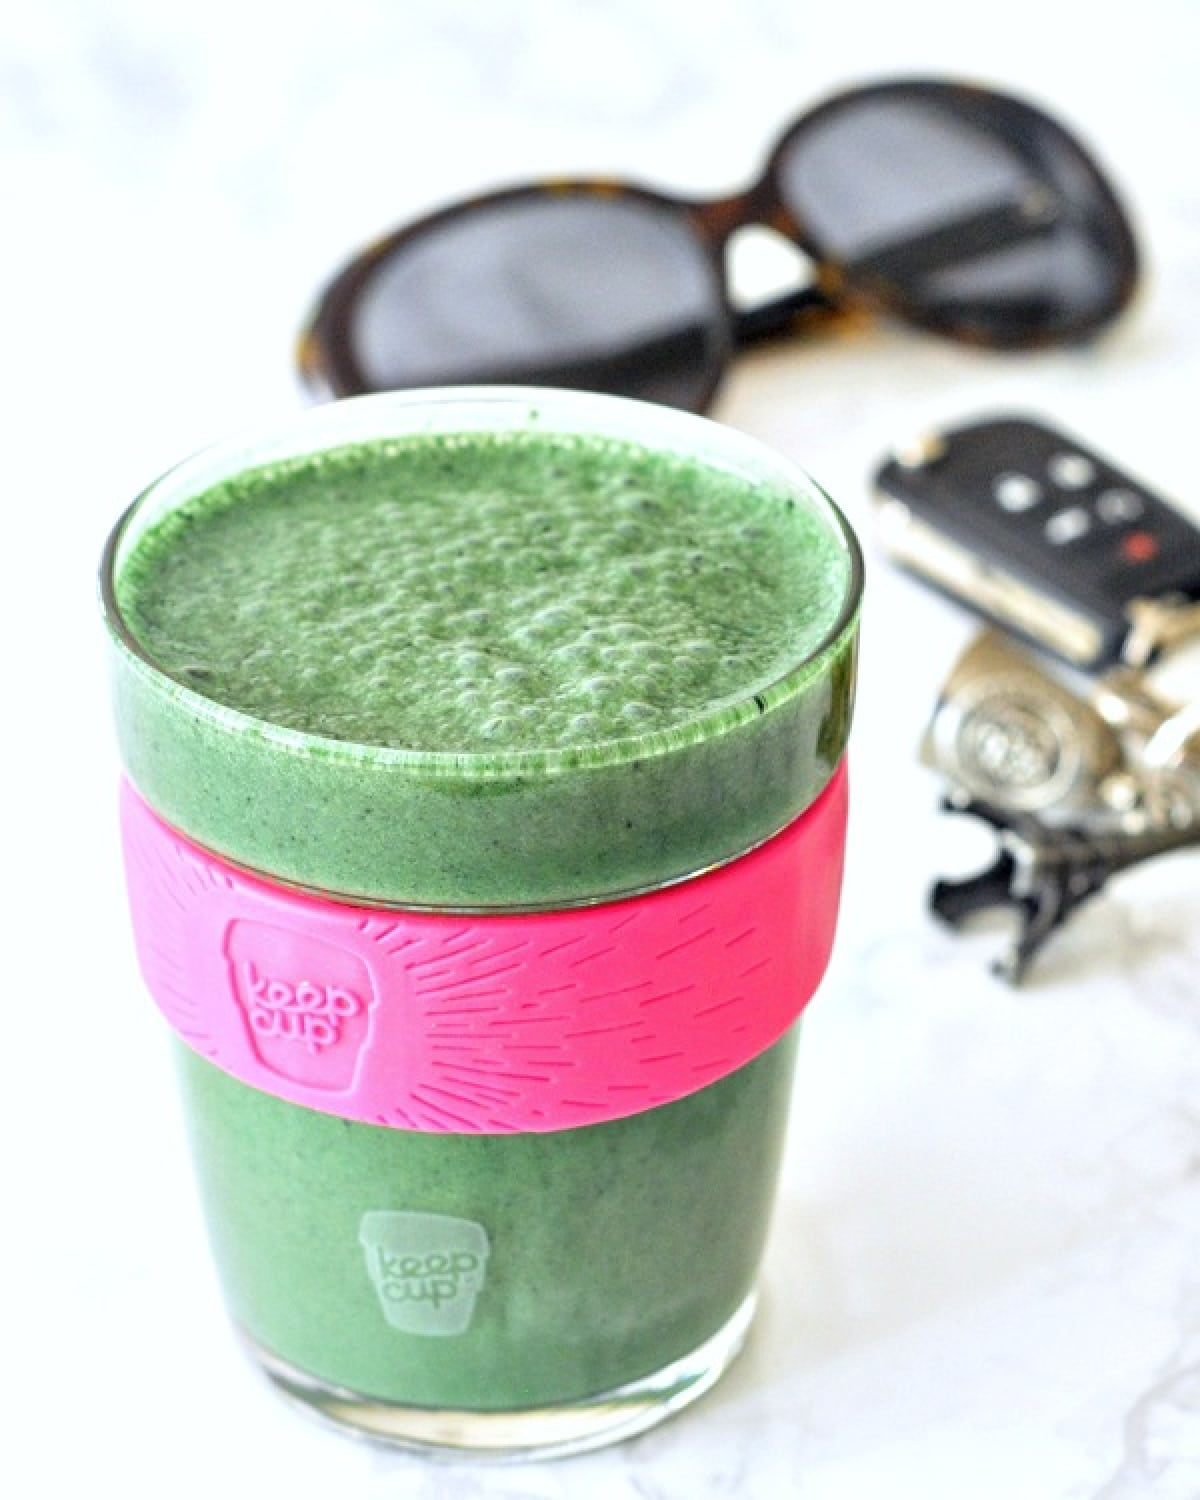 a green lemon spinach smoothie in a glass travel cup on a white marble countertop; car keys and sunglasses in background.